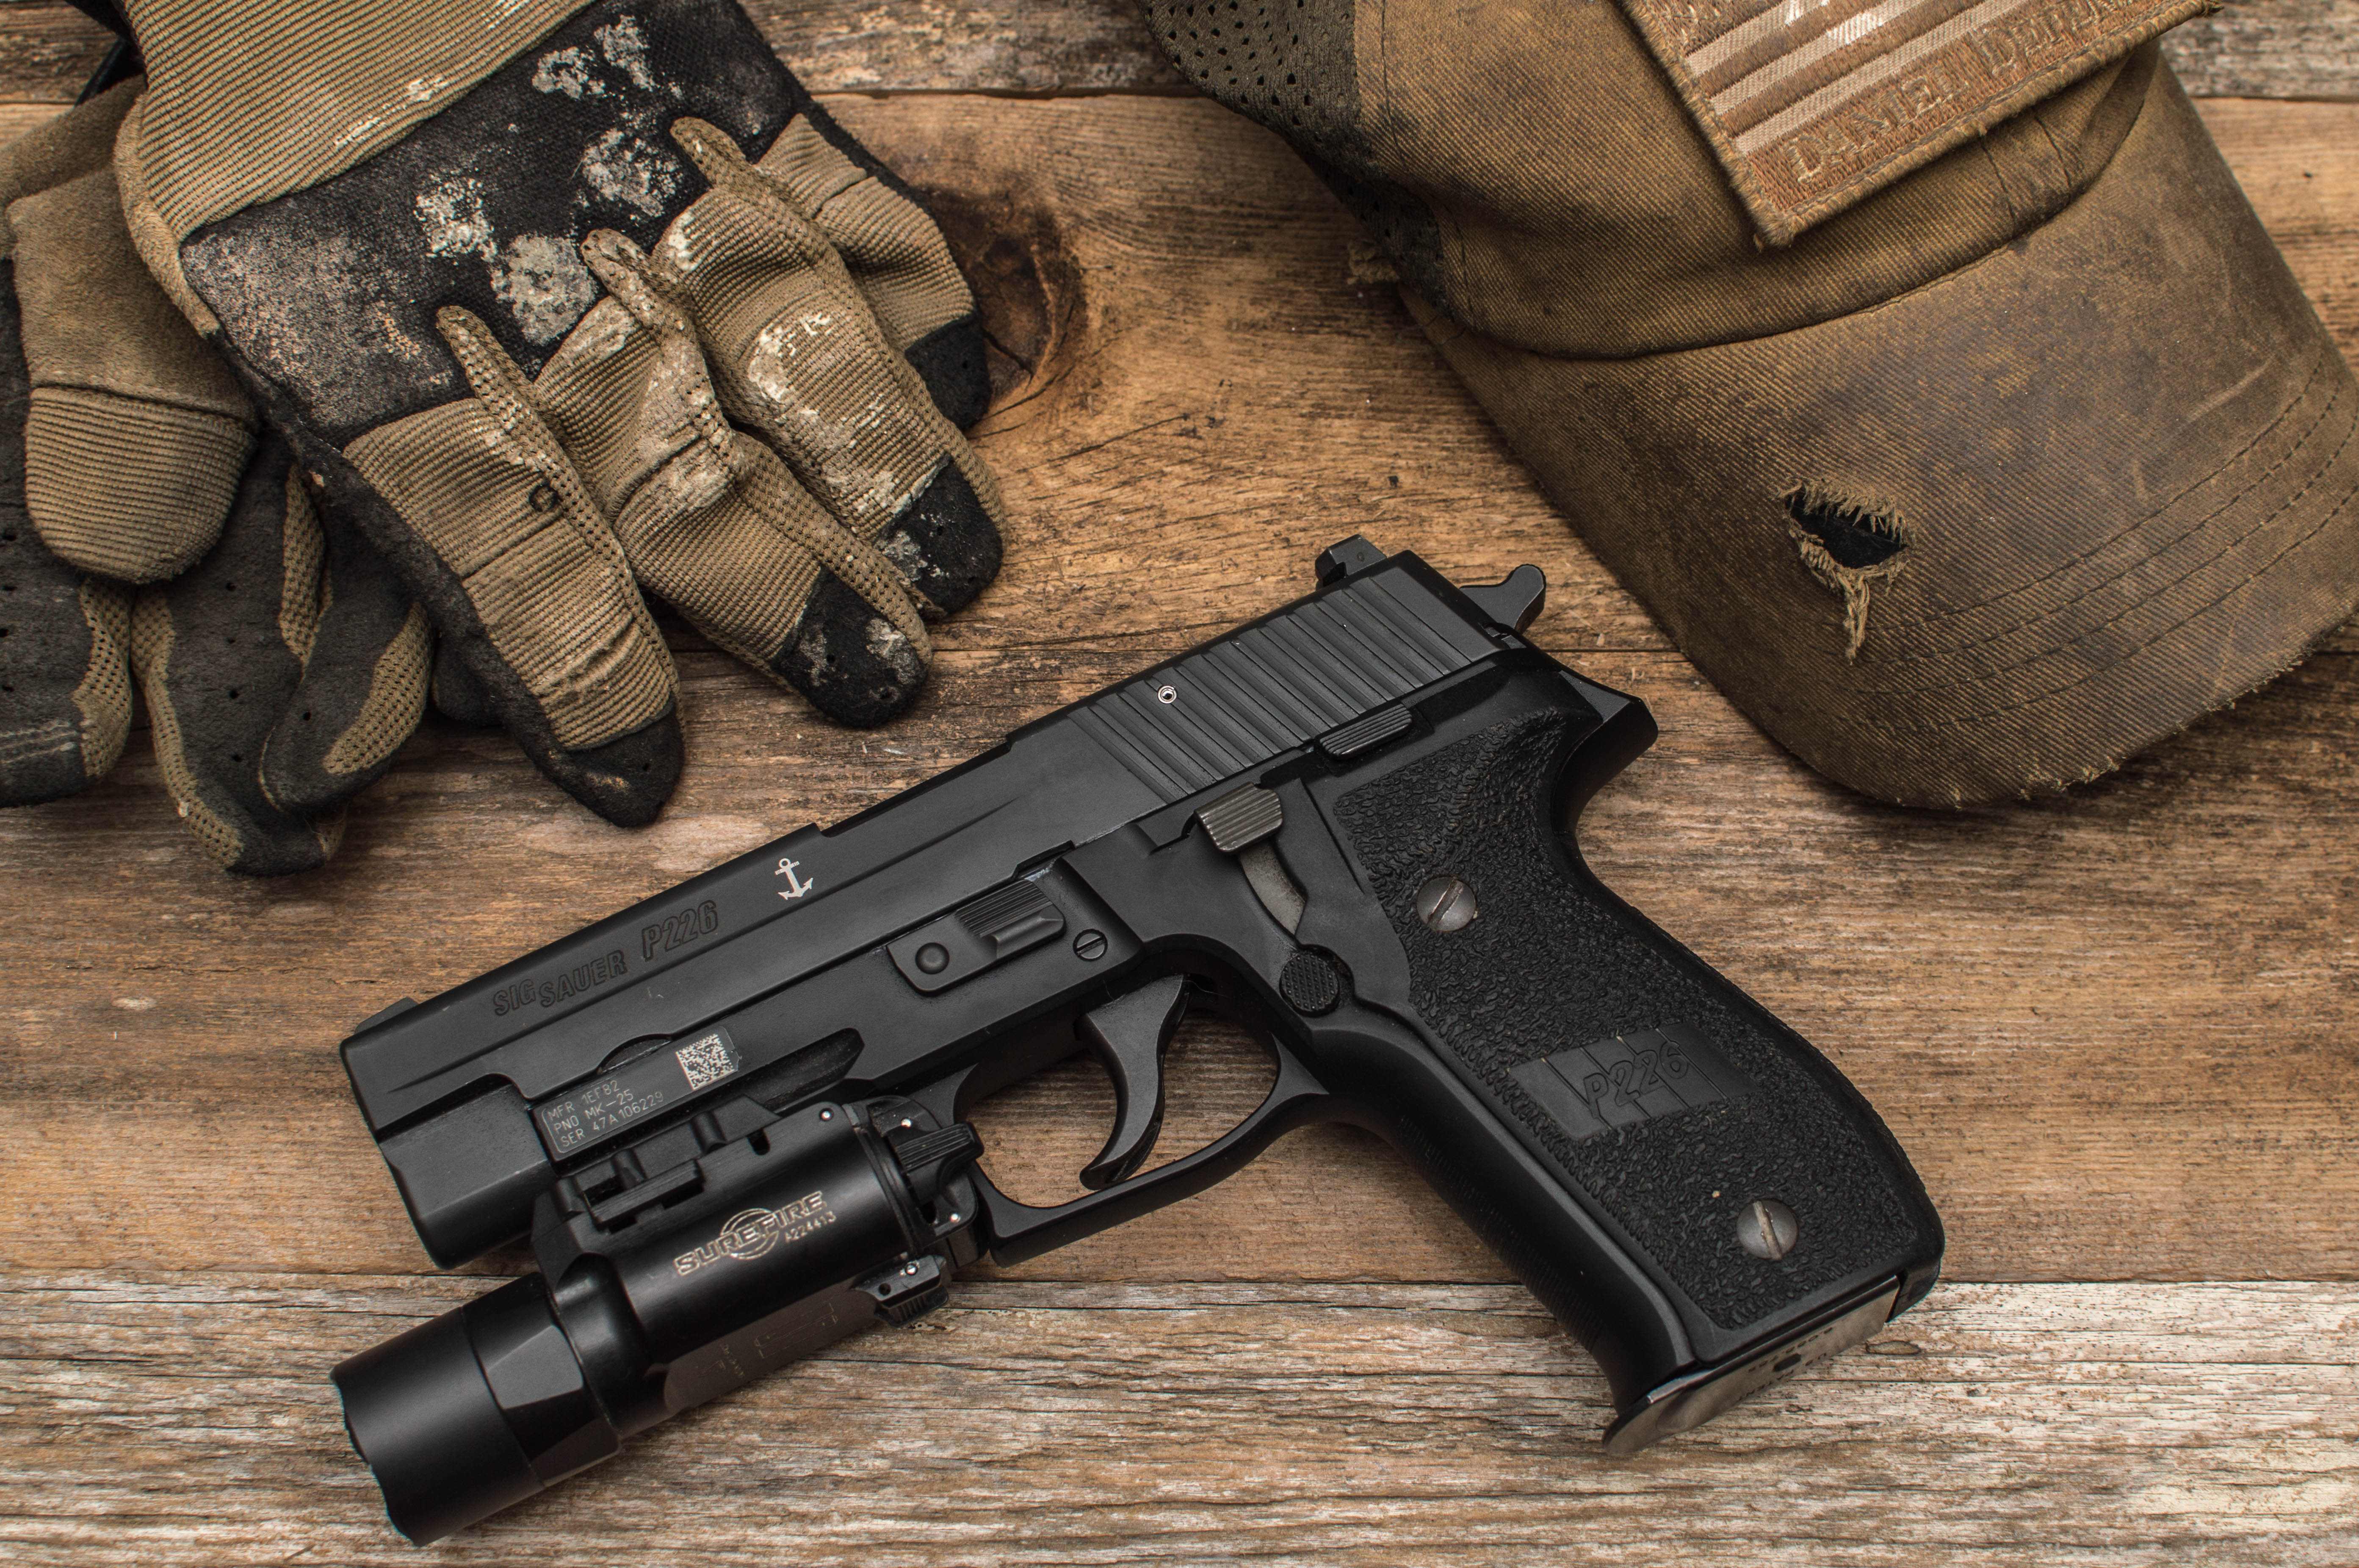 Glock Vs Sig Sauer Glock 17 Vs P226 Which Gun Is Better